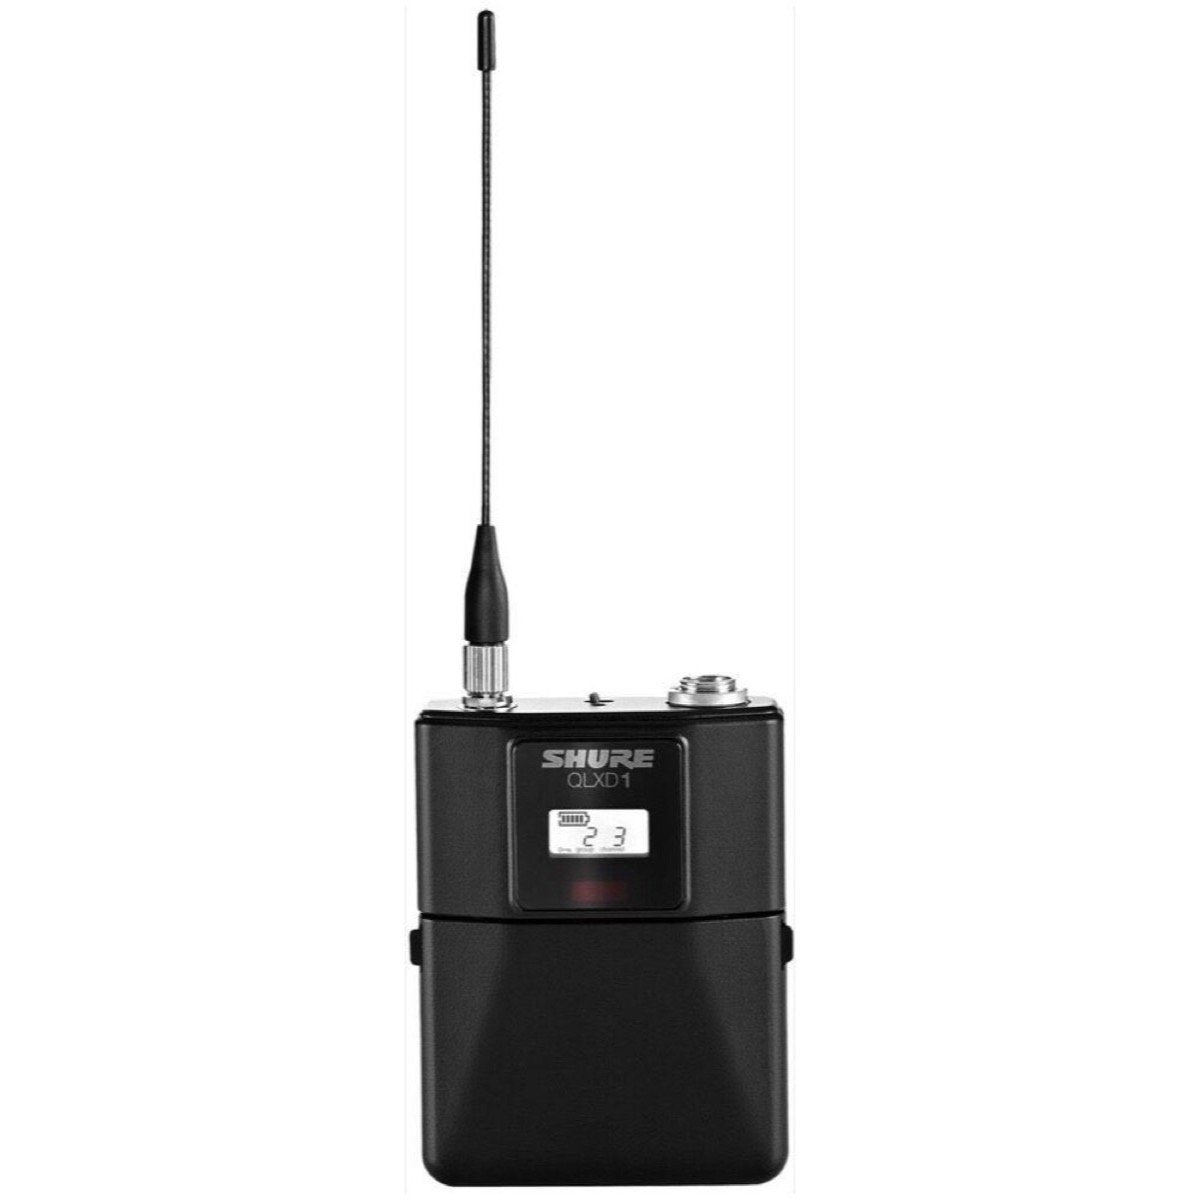 Shure QLXD12485 Combo Wireless System with SM58 Handheld Transmitter and WL185 Lavalier Microphone, Band G50 (470 - 534 MHz)